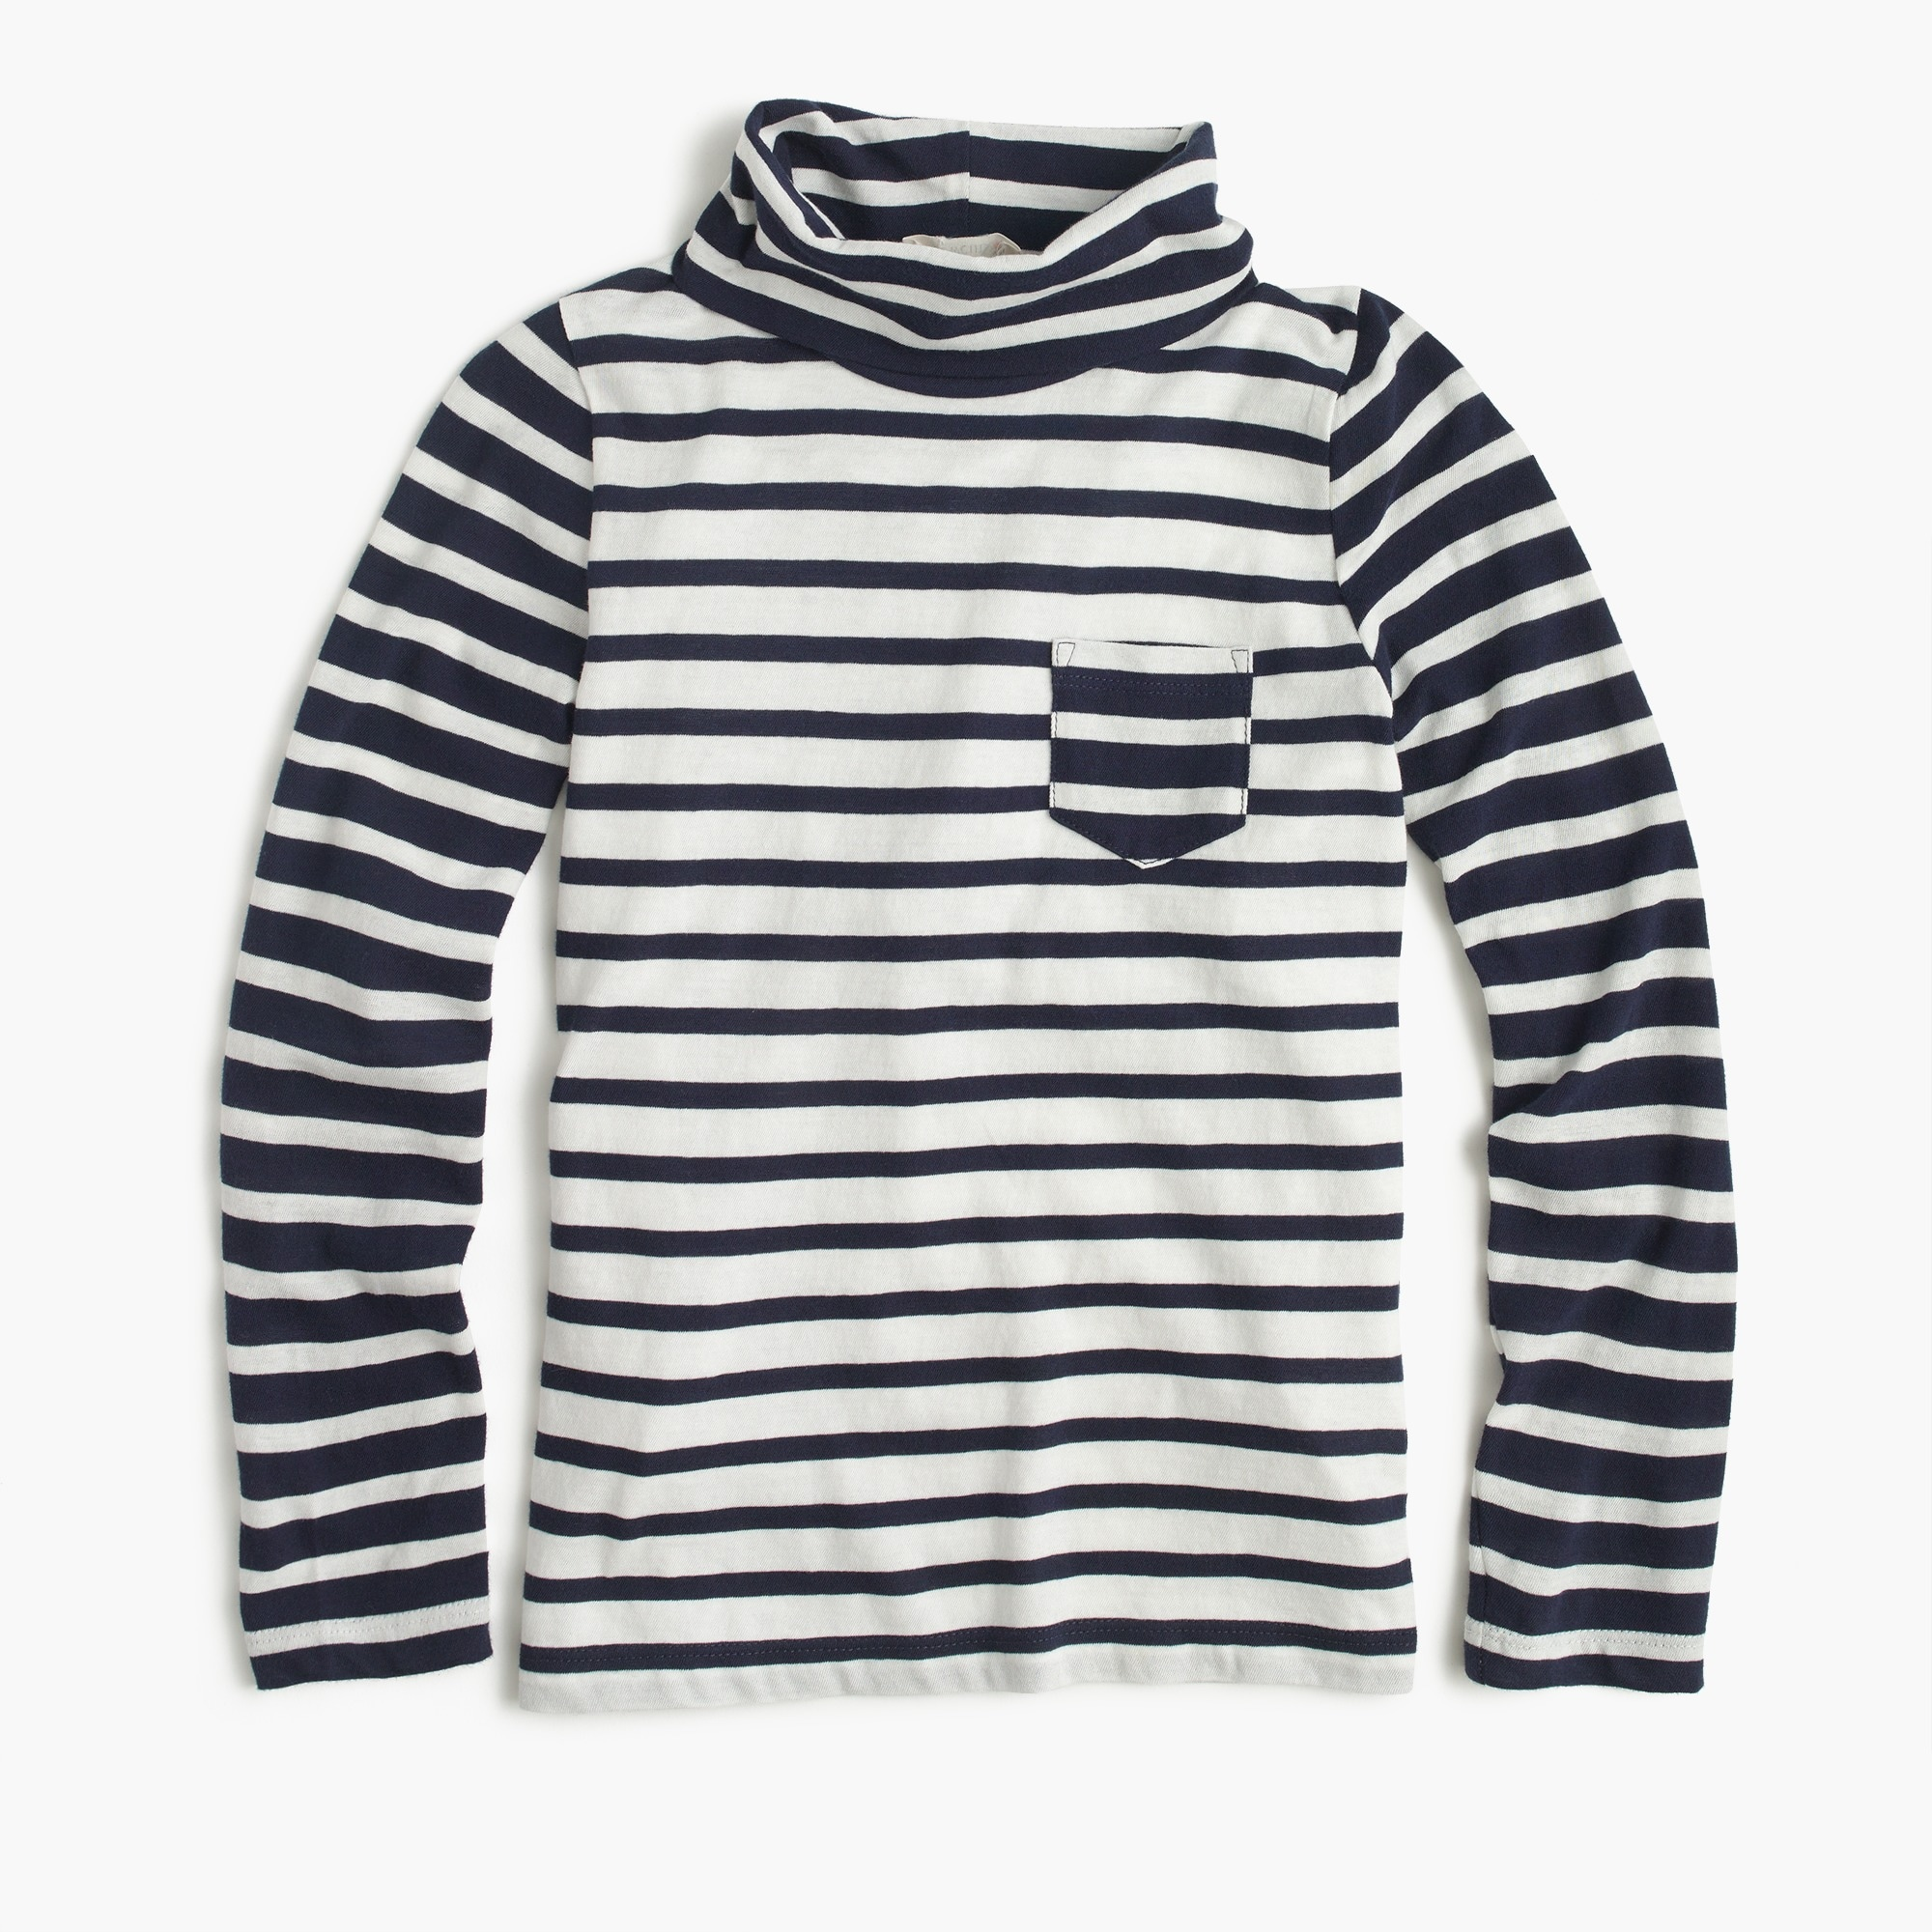 Image 1 for Girls' turtleneck in colorblock stripe